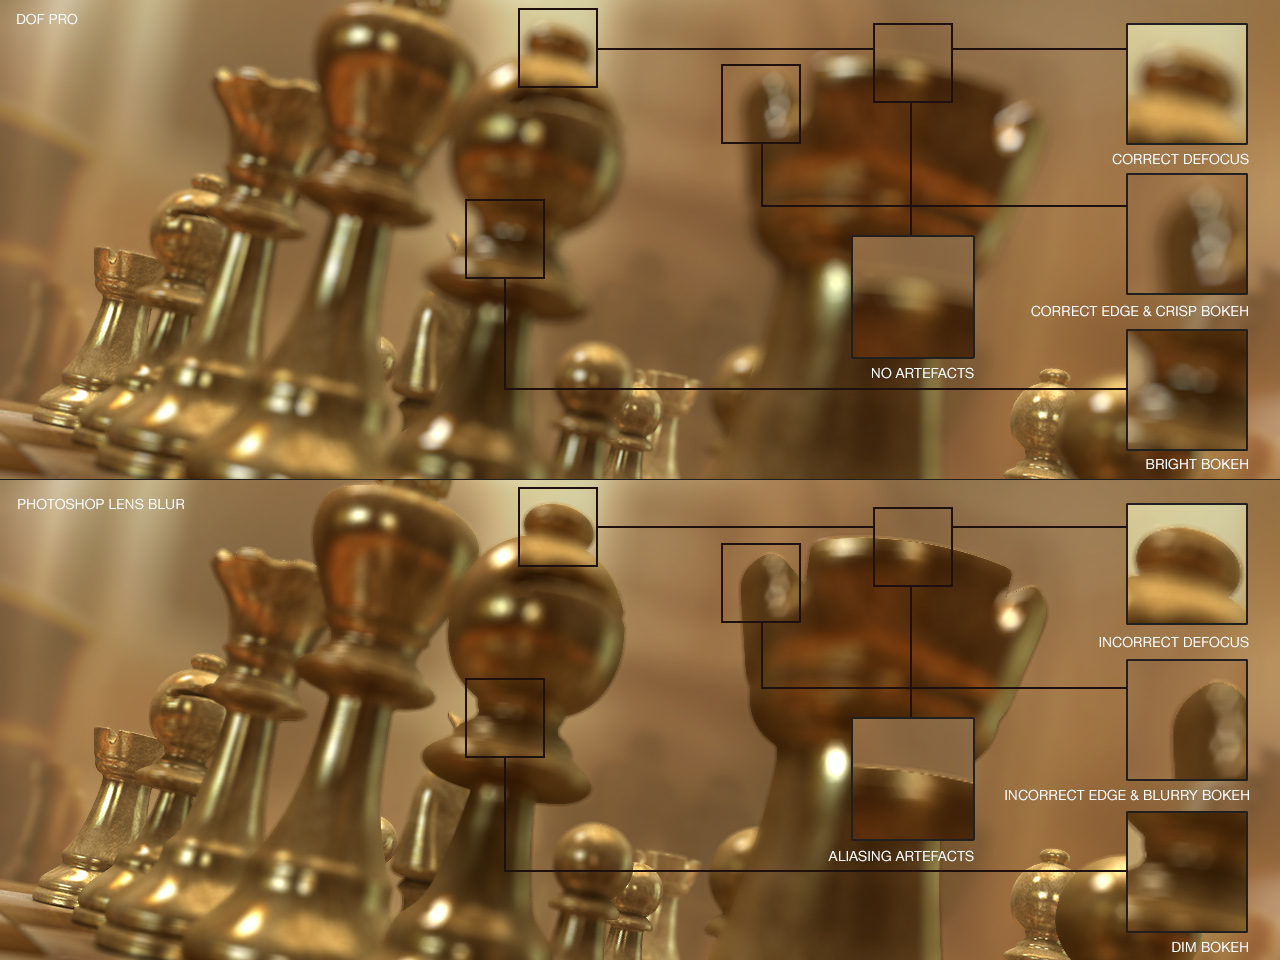 DOF PRO vs Photoshop Lens Blur Changed Focus